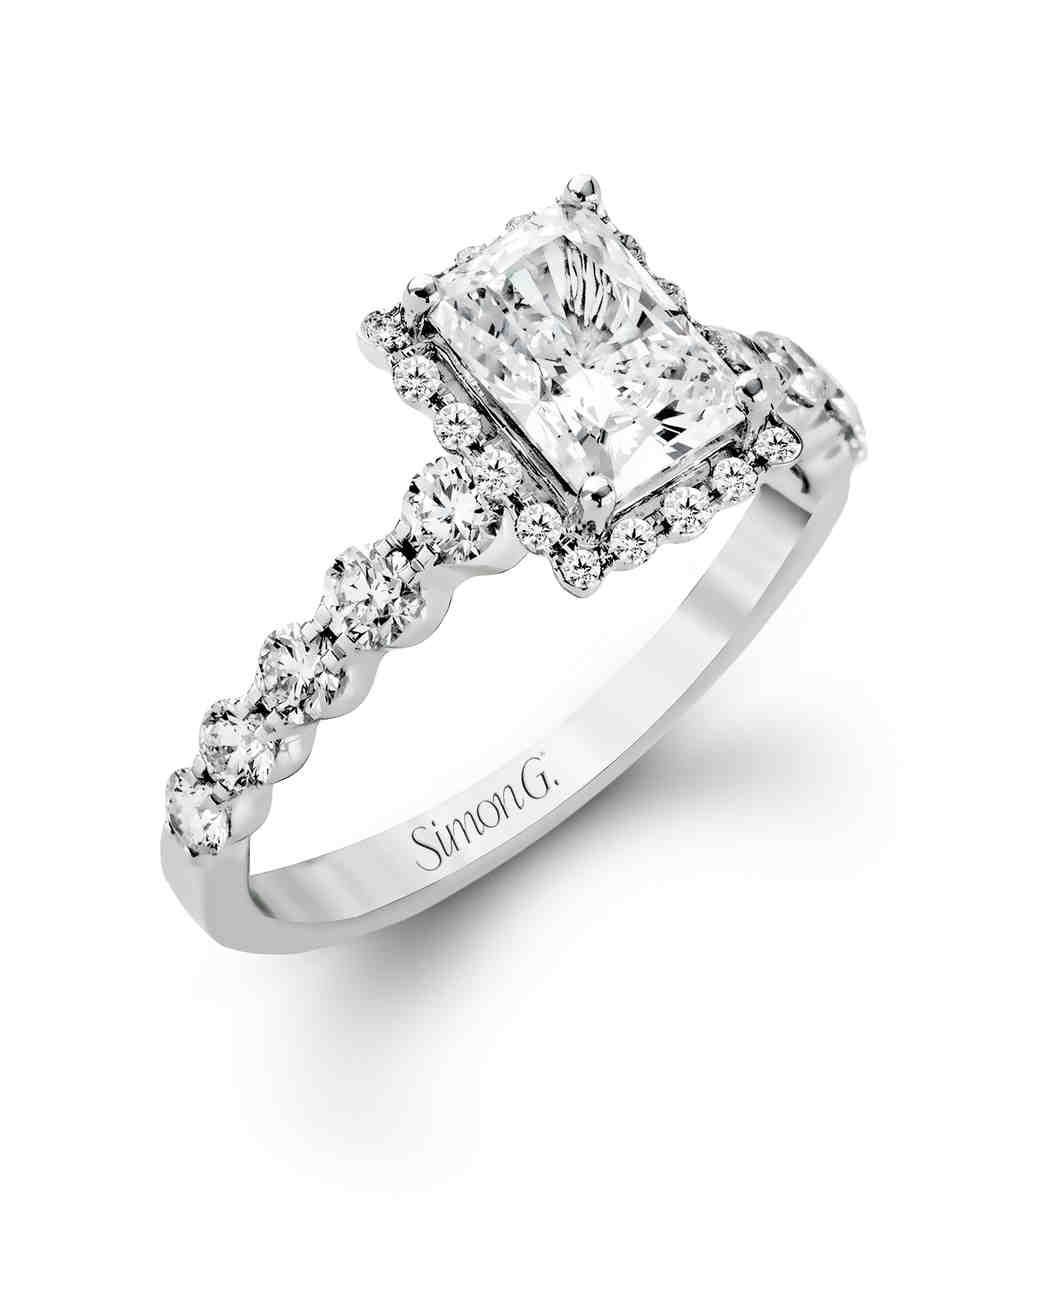 ring diamond engagement rings classy floating artemer products minimalist marquise solitaire